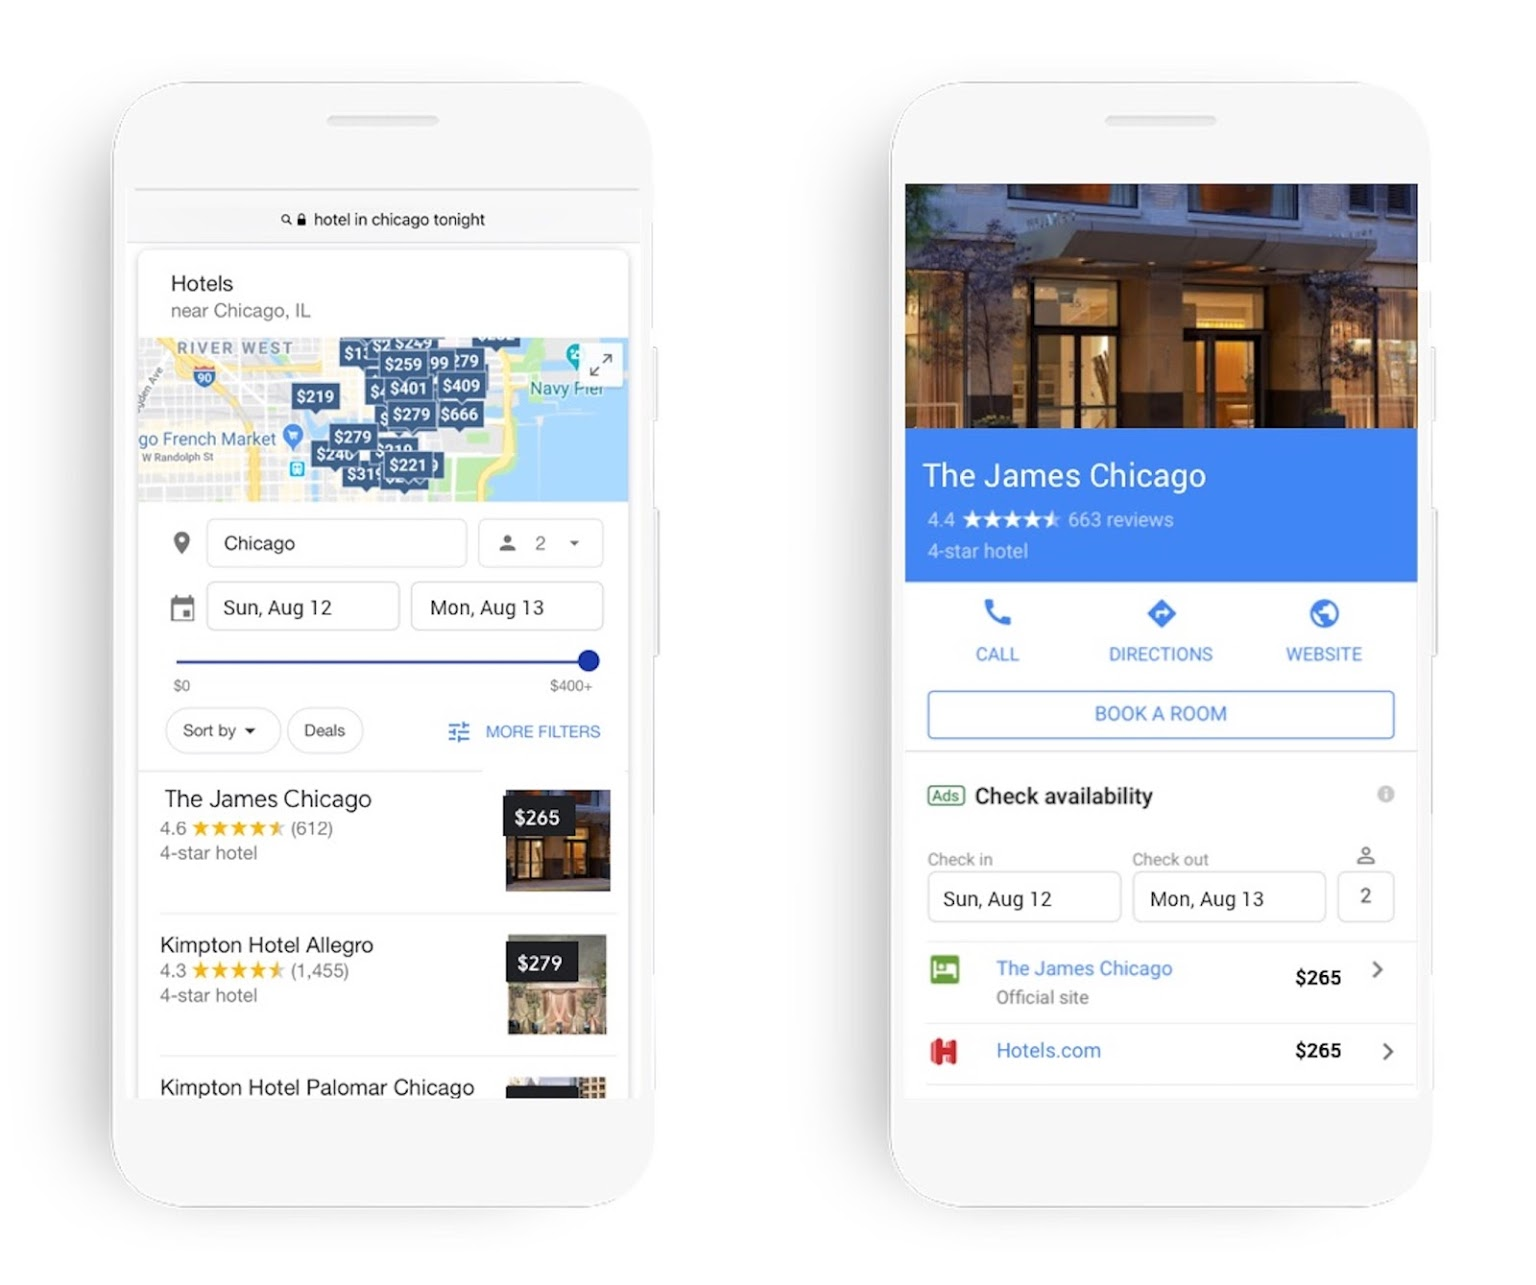 Google Hotel Ads. List Your Vacation Rentals‎ Official Site | Guide To Google Hotel Ads‎ Drive Bookings with Ads for Your Hotel Front Desk Reservation Calendar Drag and Drop, for Hotel · Hostel · B&B · Vacation Rental For Independent Properties and Group Hotel Chains